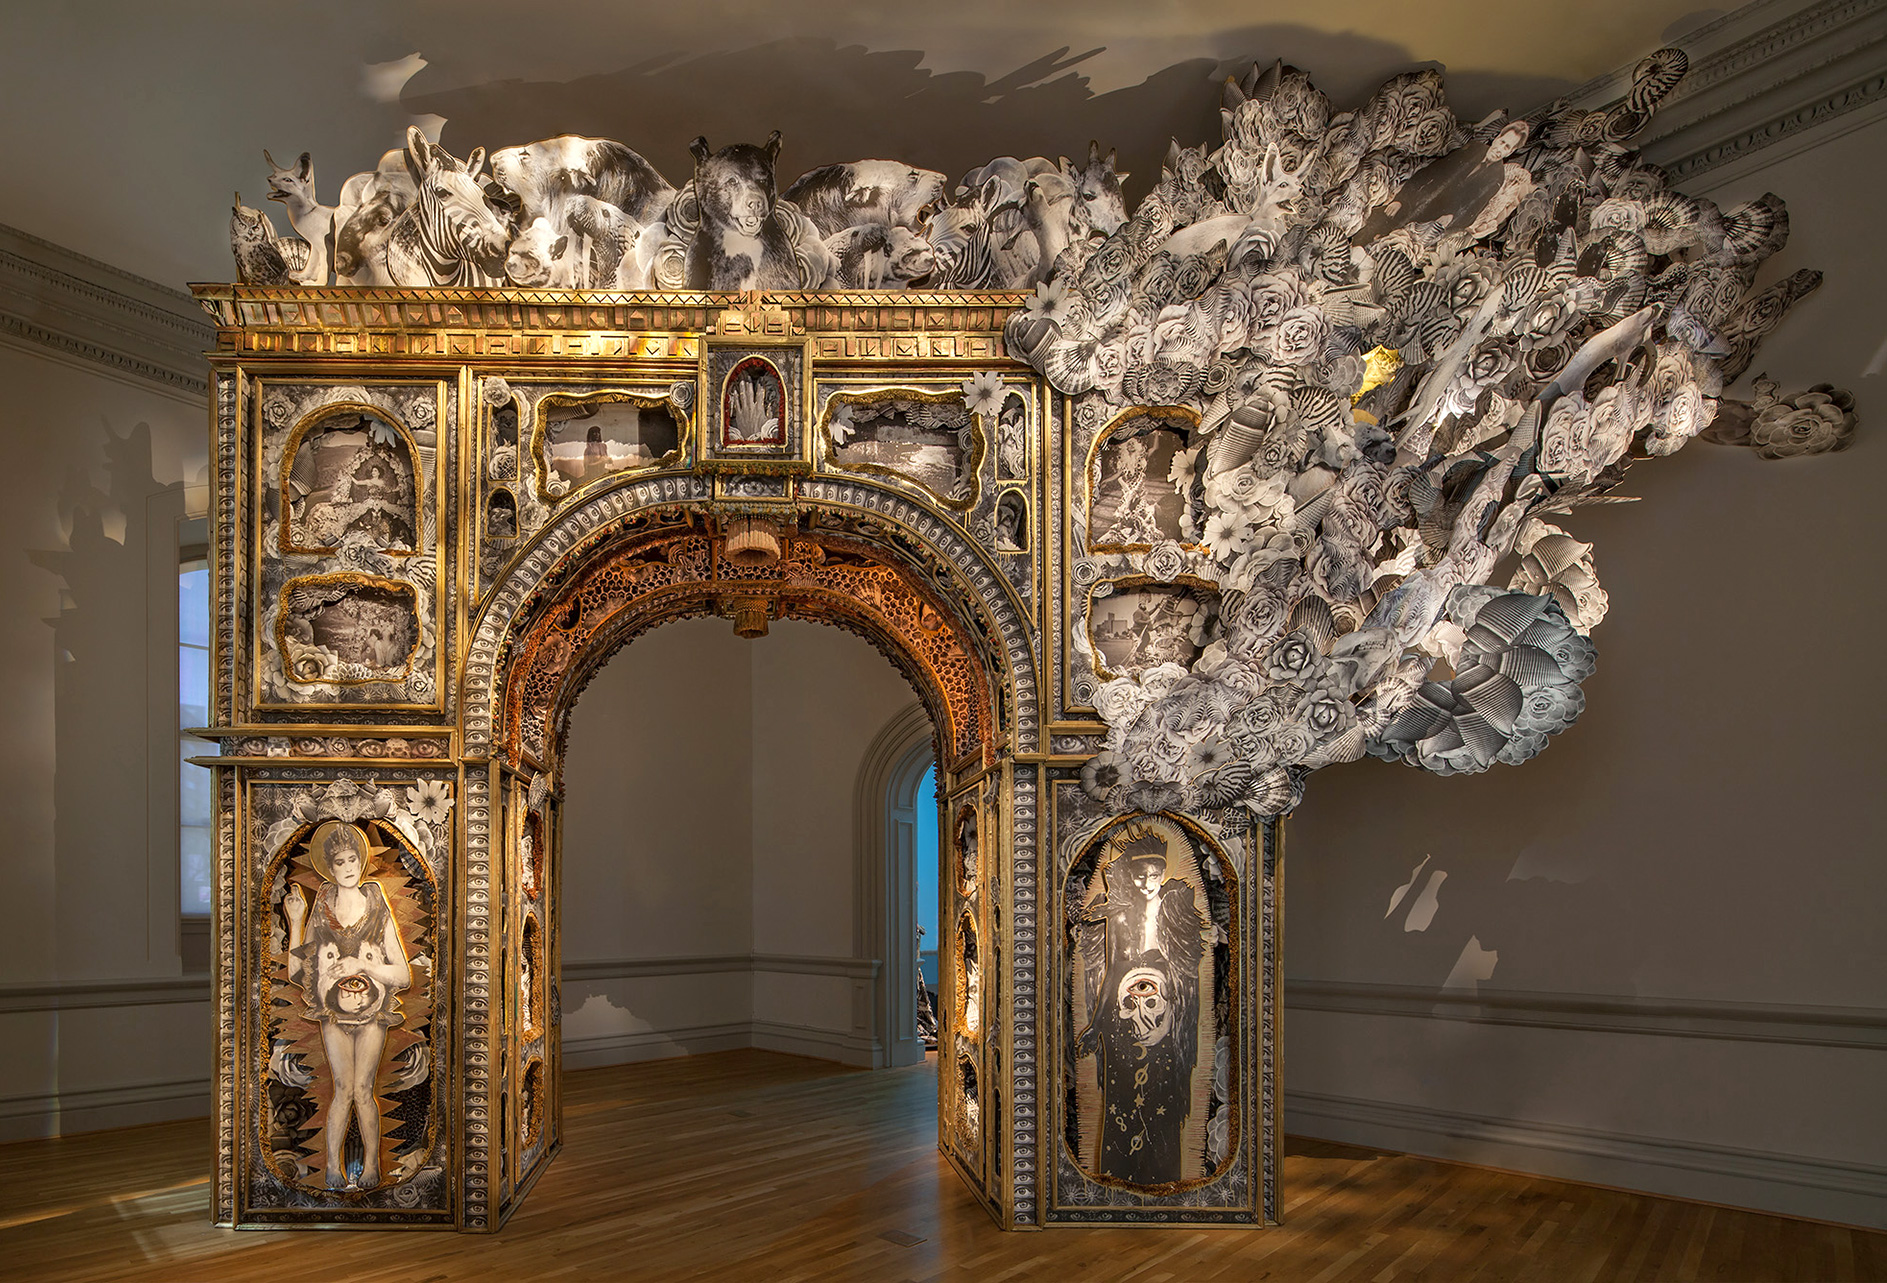 Michael Garlington and Natalia Bertotti, The Paper Arch, 2018 | No Spectators: The Art of Burning Man | Oakland Museum of California | STIRworld